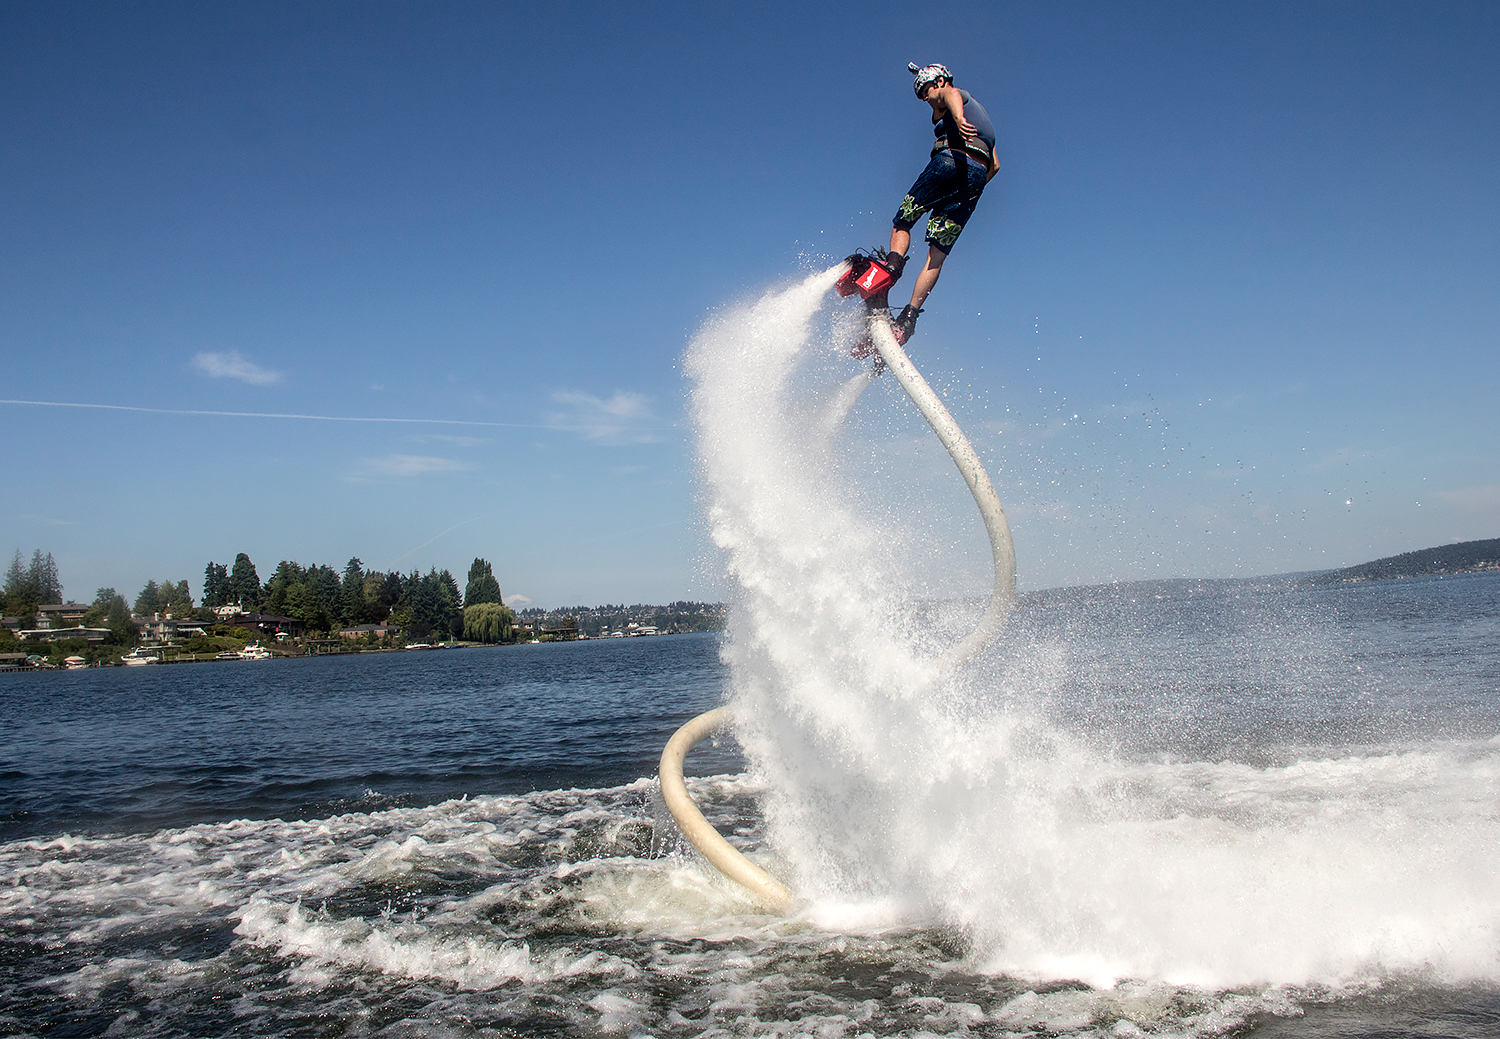 hydro chair water ski pier 1 and ottoman expert flyboard lessons instruction fly board rentals flyboarding